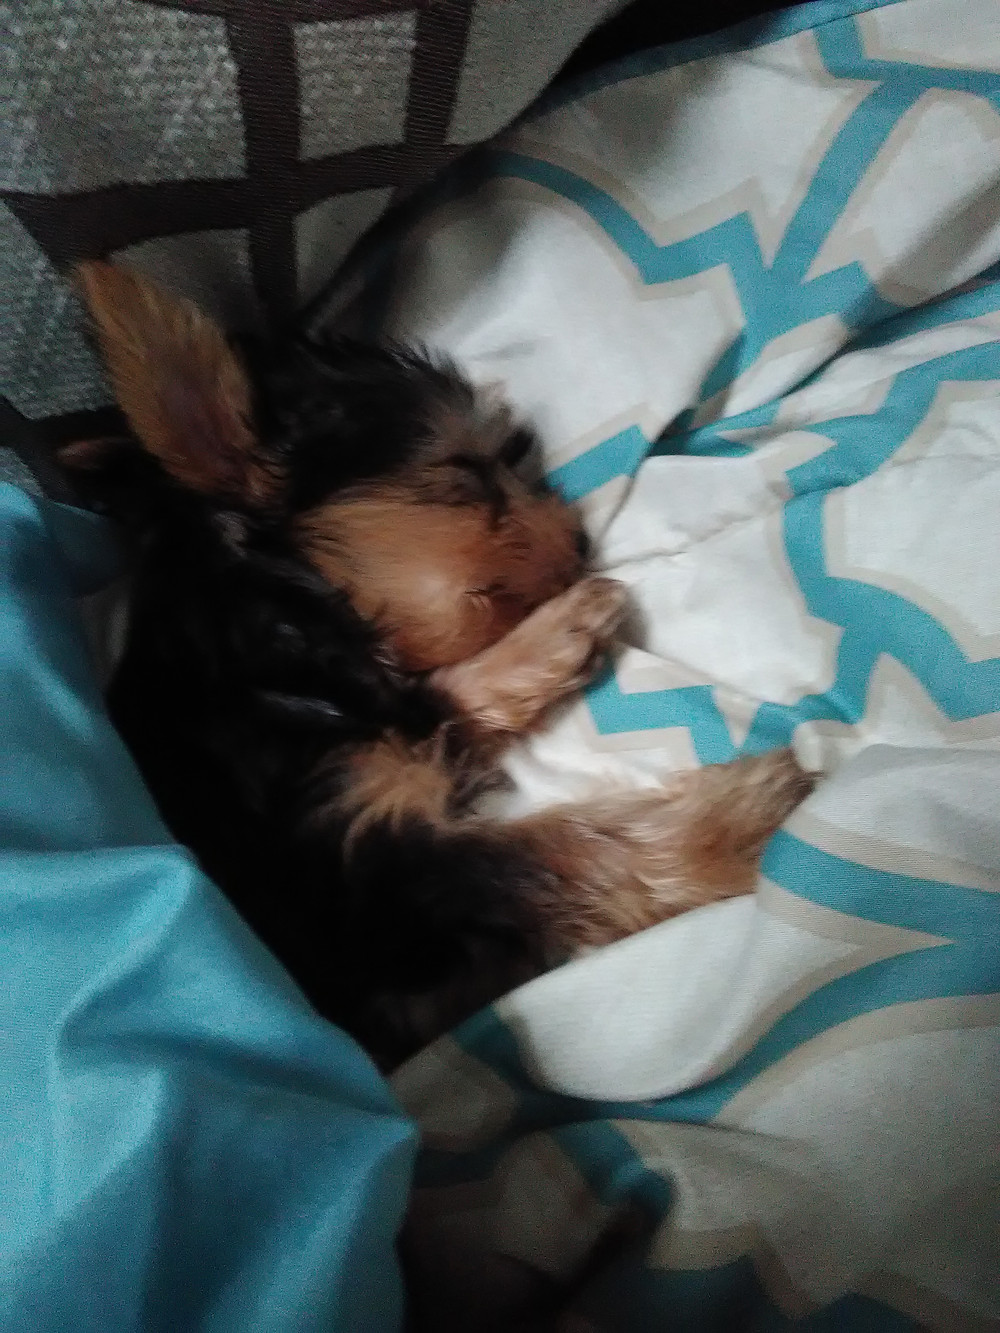 He is sleeping right now. He is a Yorkie by the way.